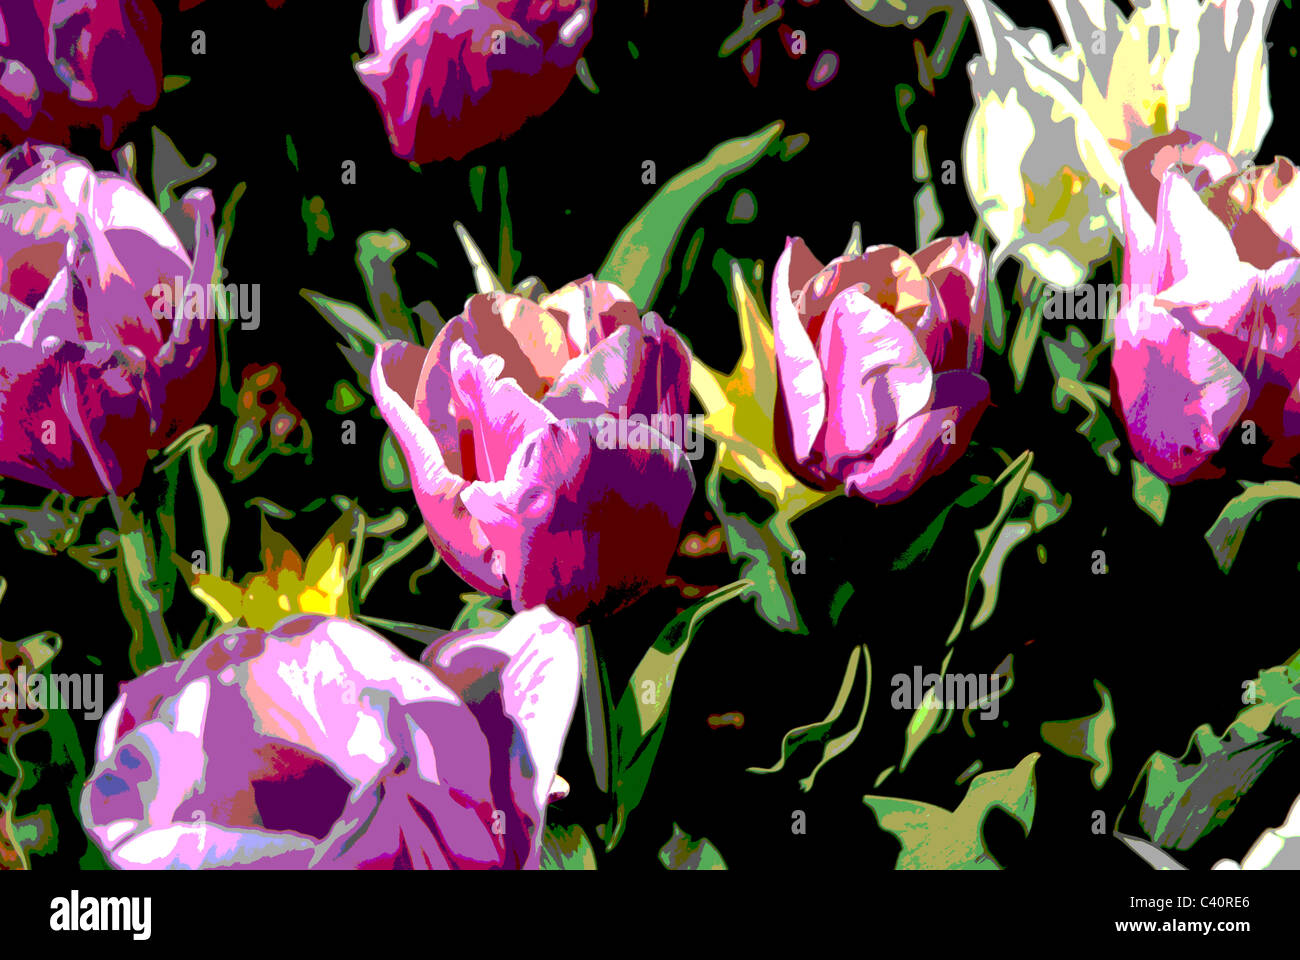 tulips, posterized in Photoshop - Stock Image